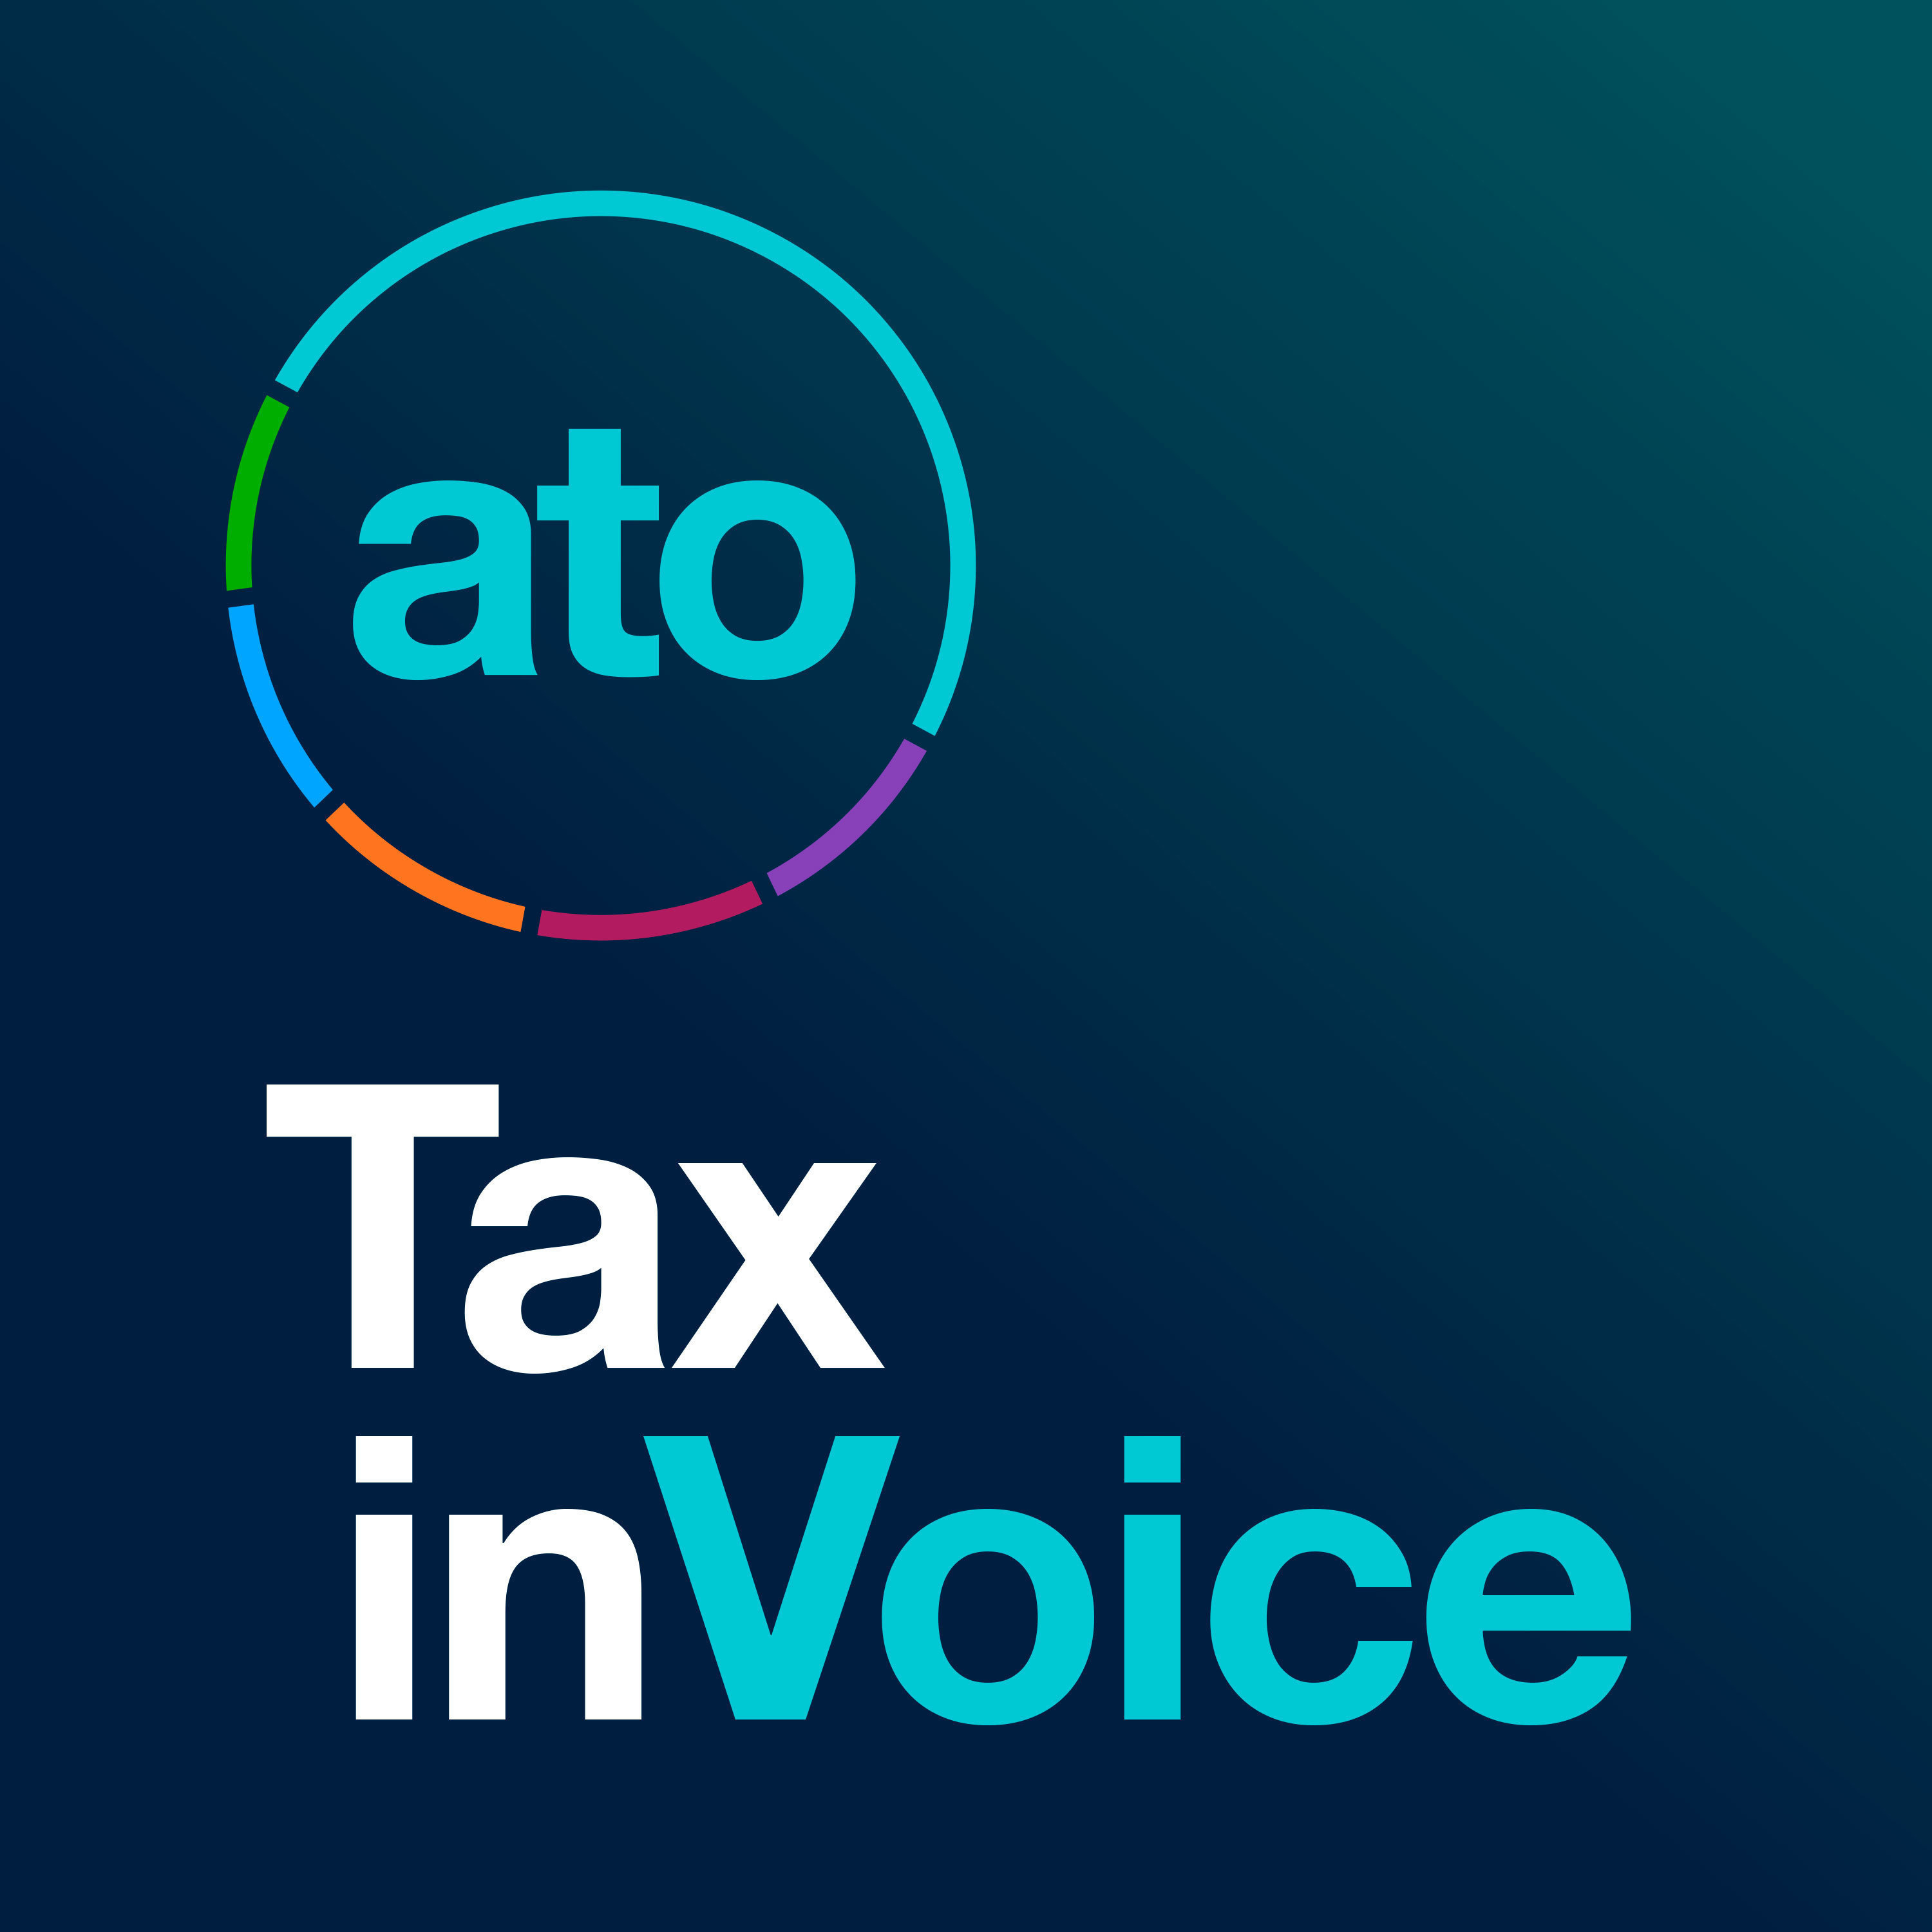 Tax inVoice - Mental health support